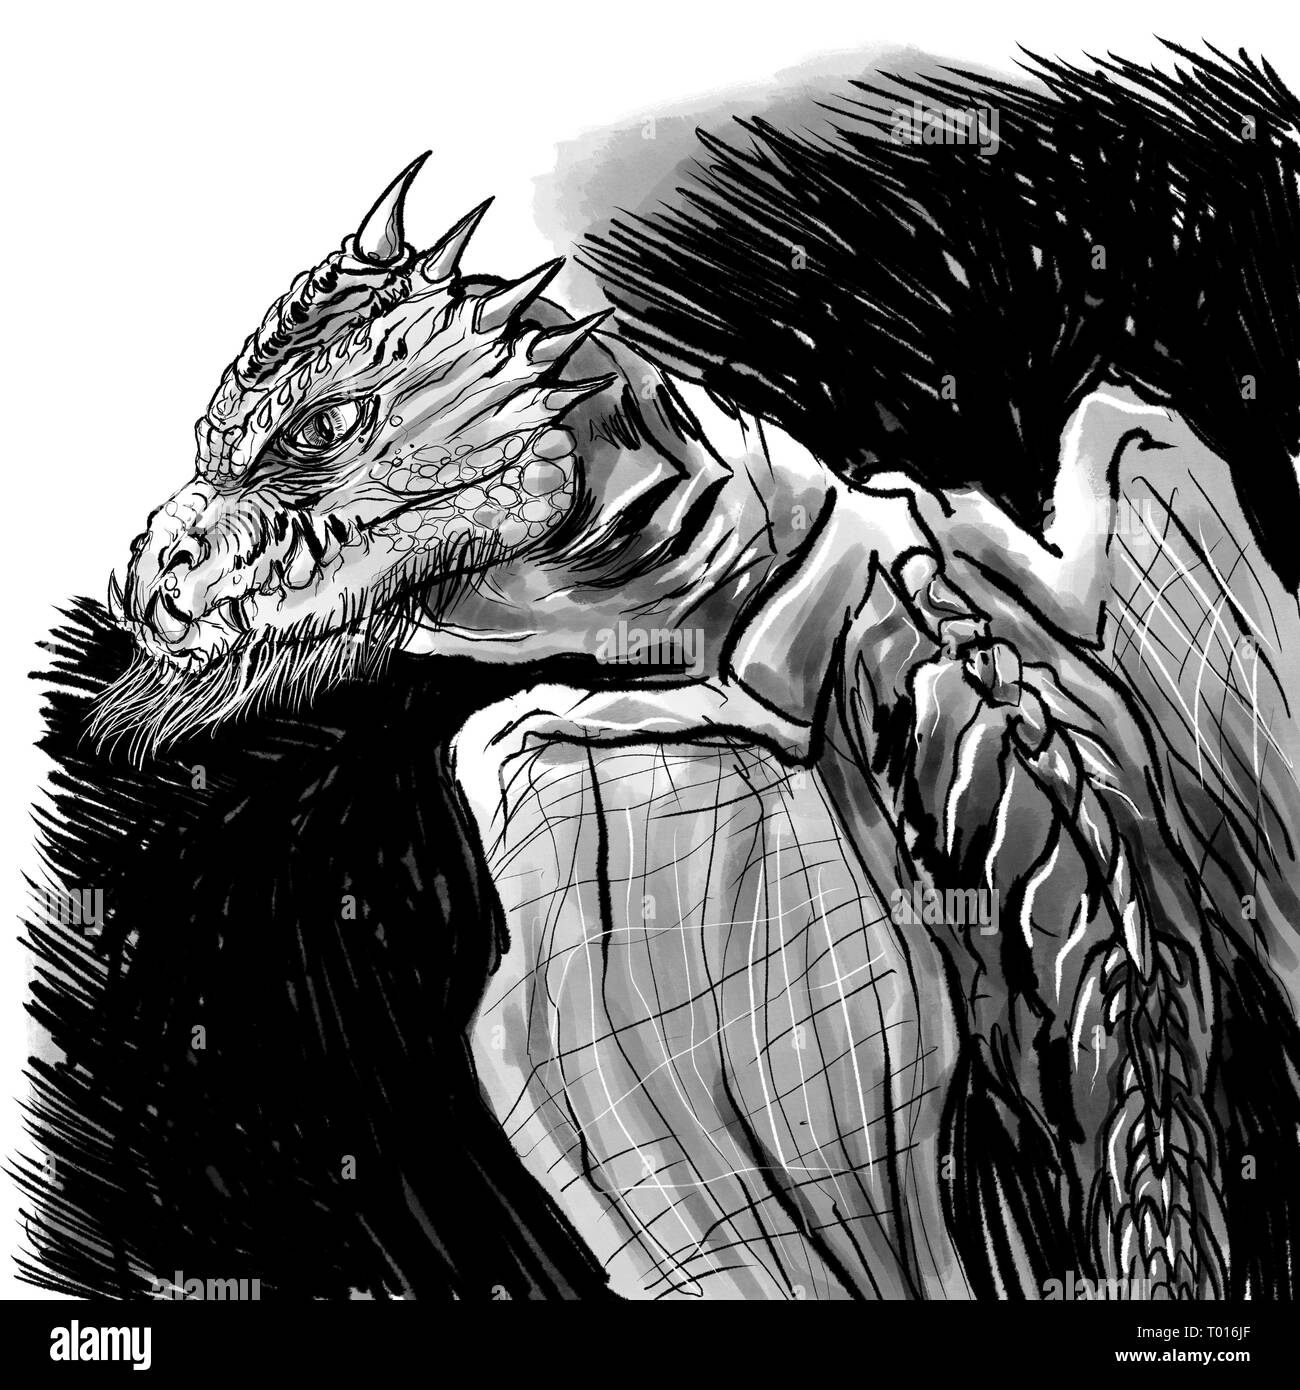 A scaly, beastly dragon illustration - Stock Image